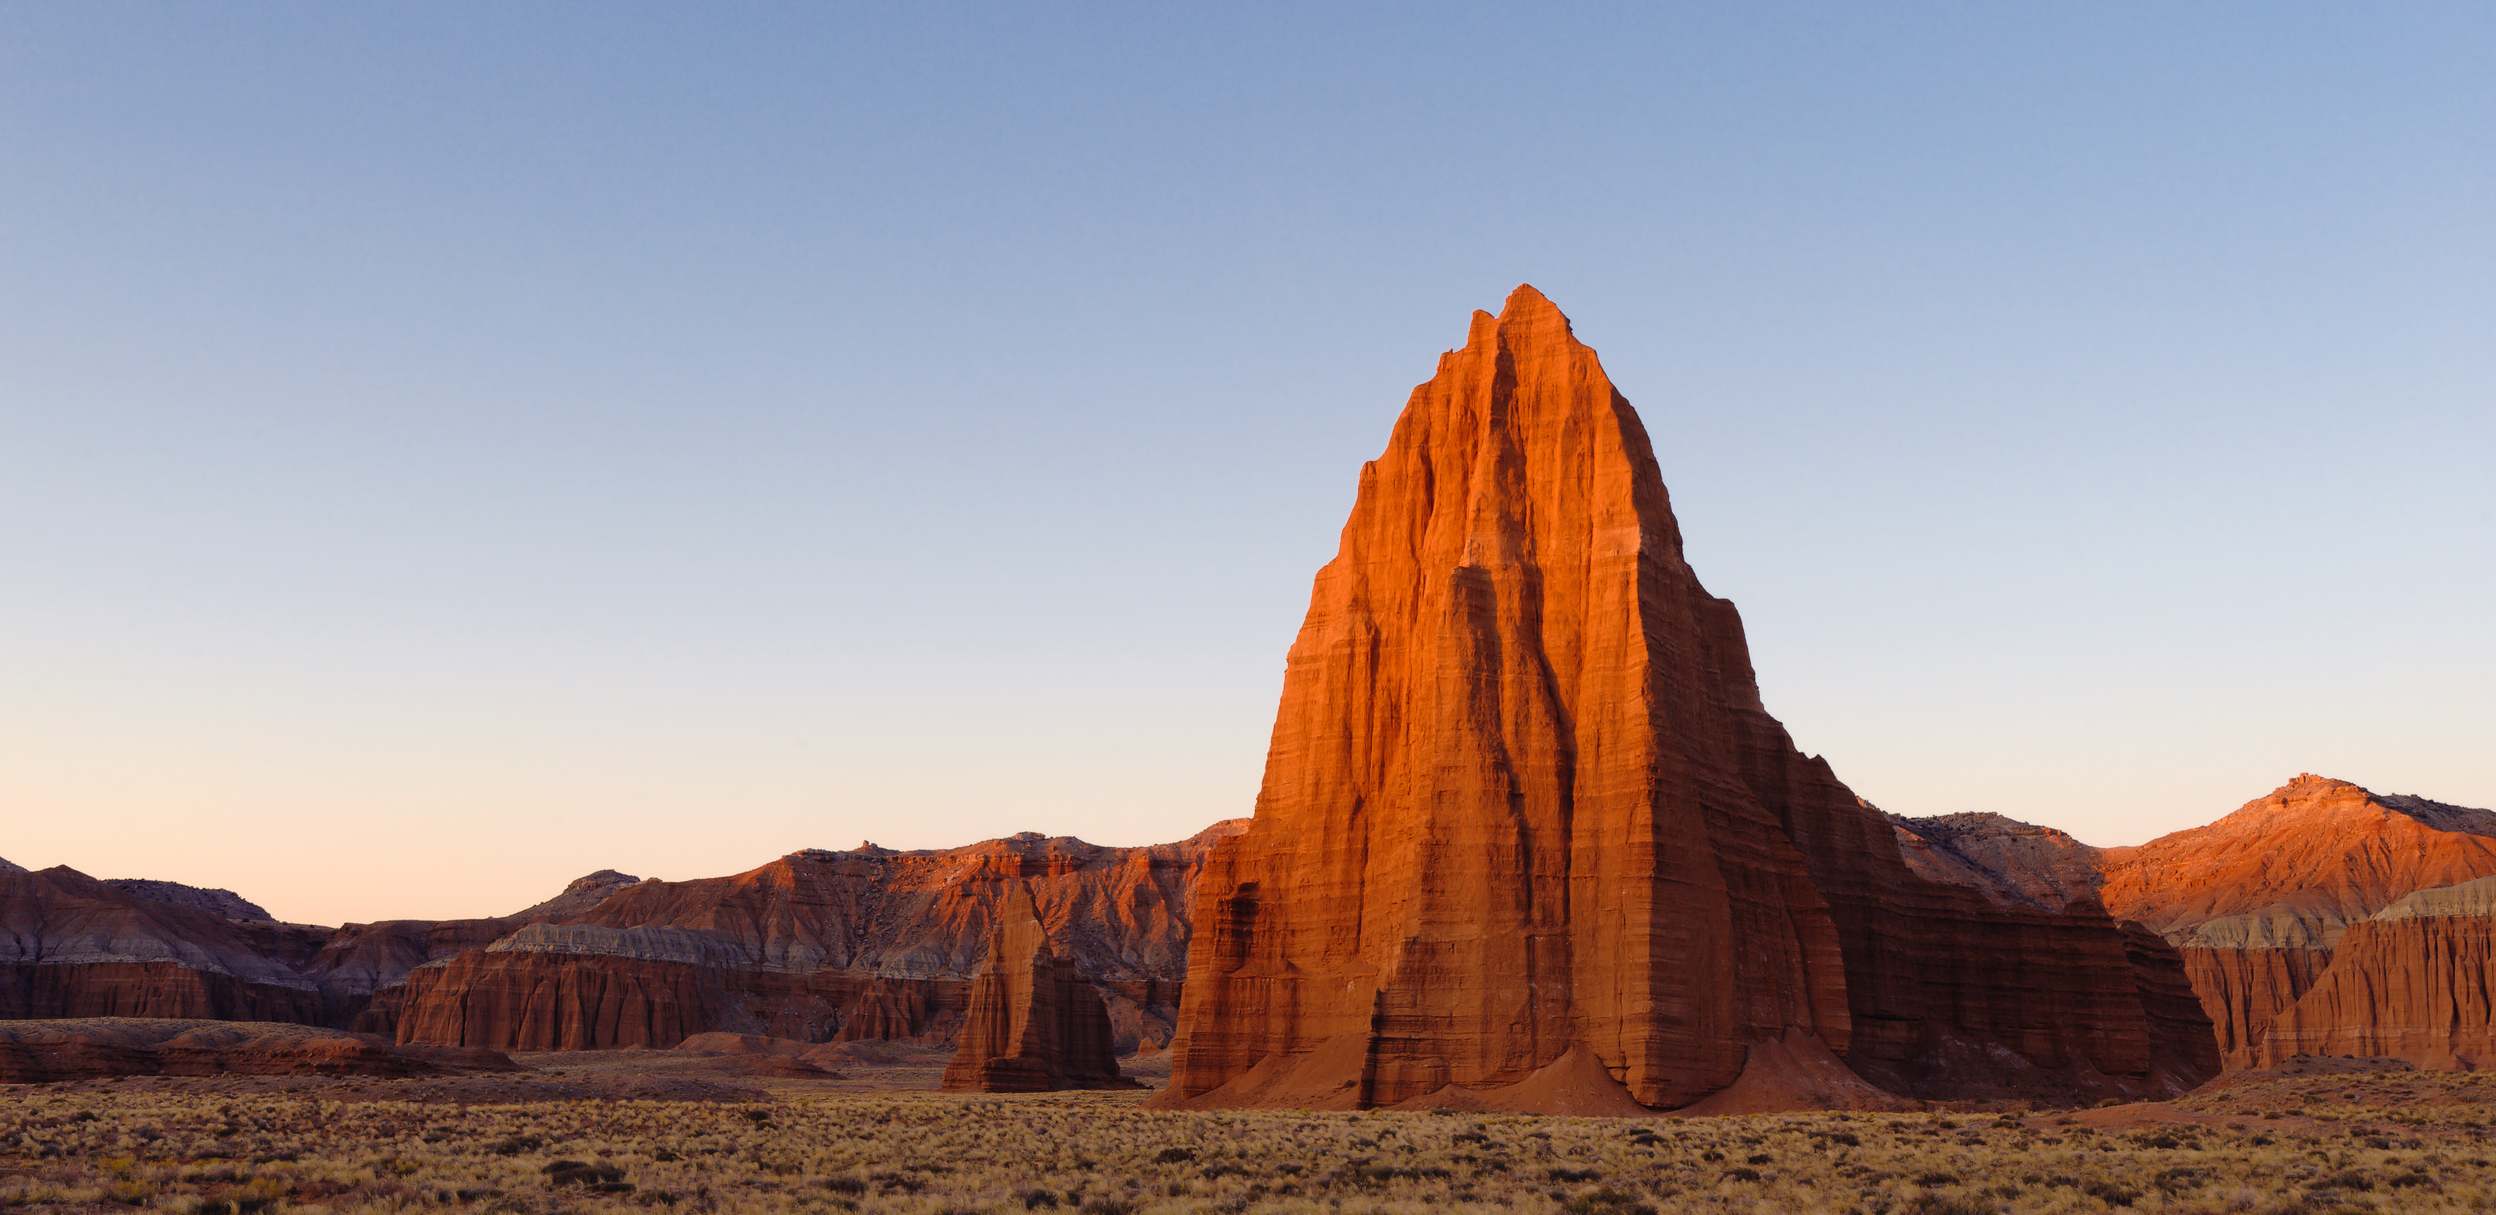 THE CATHEDRAL VALLEY OF CAPITOL REEF NATIONAL PARK –(PHOTO: KOJIHIRANO/SHUTTERSTOCK)